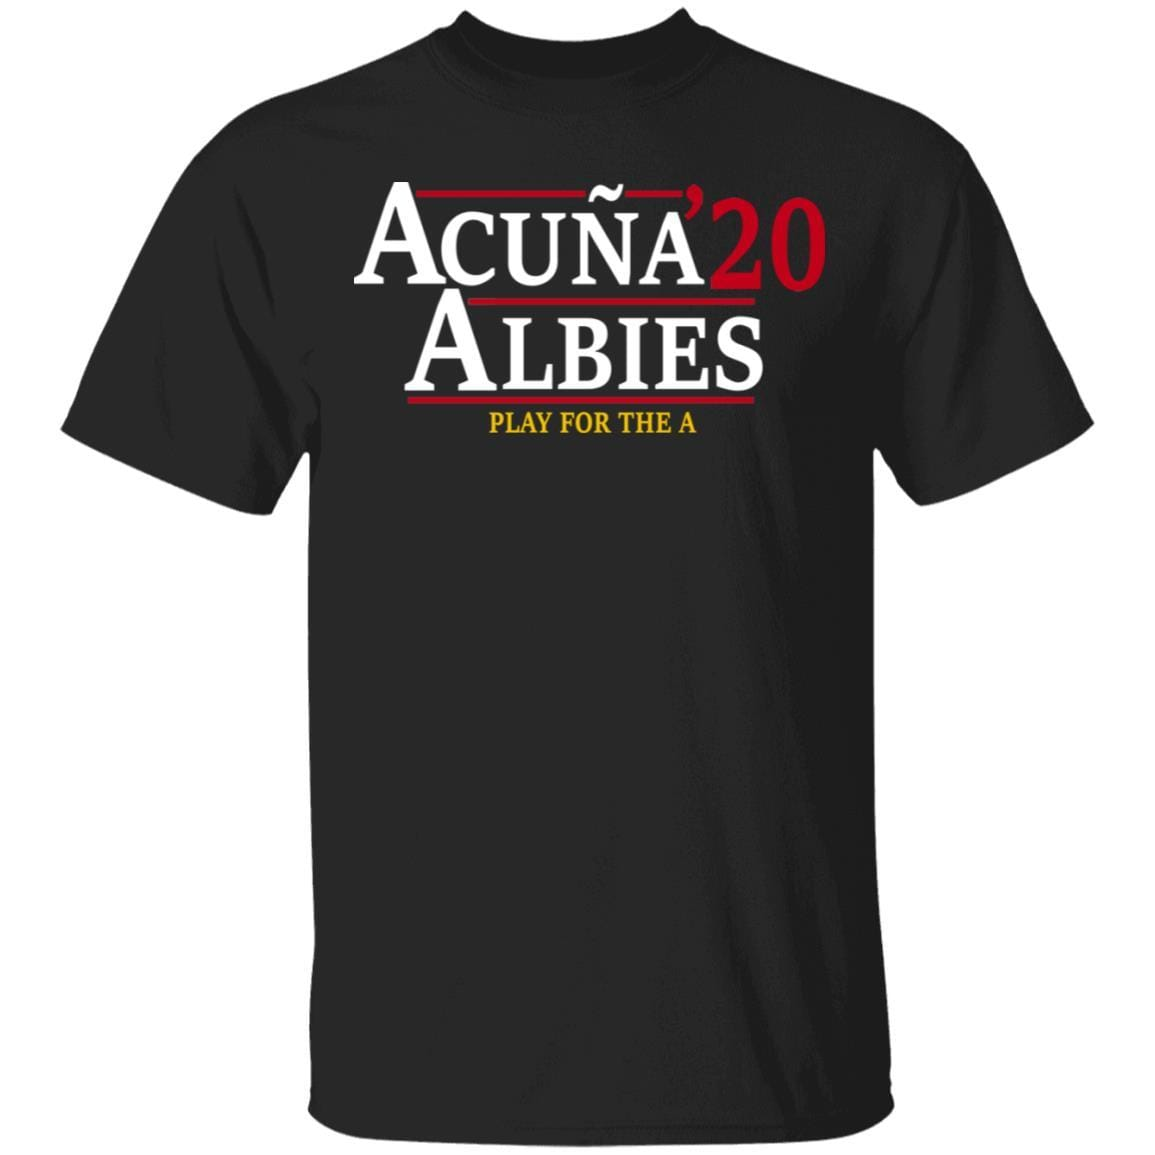 Acuna Albies 2020 Play For The A T-Shirts, Hoodies 1049-9953-88478048-48144 - Tee Ript